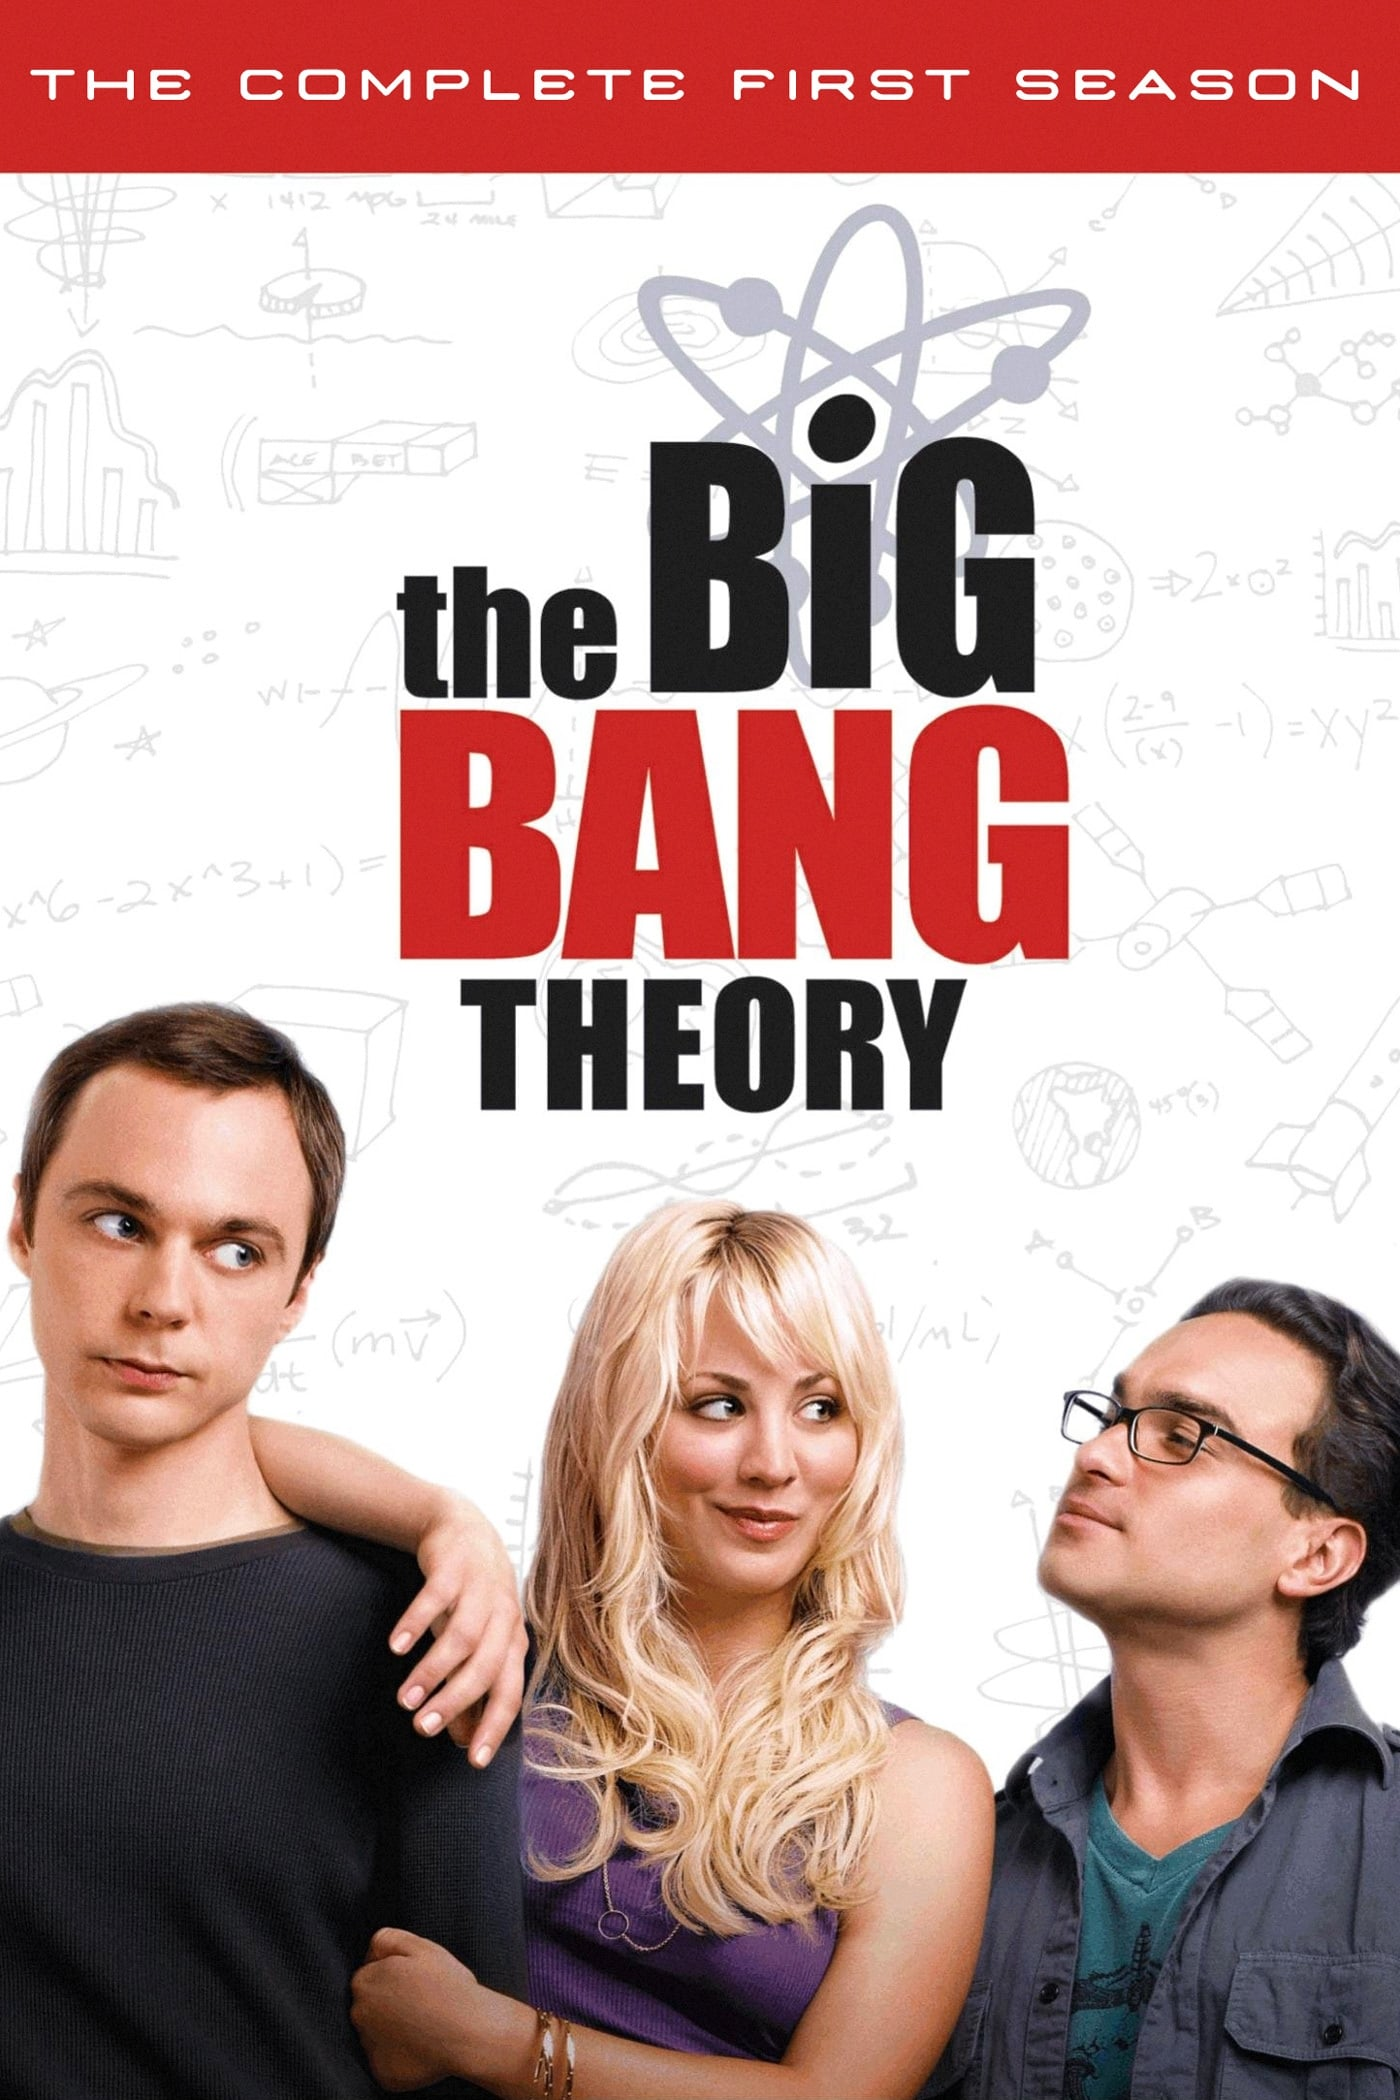 http://astridclasen.info/the-big-bang-theory-1a-temporada-2007-bluray-720p-dual-audio-torrent-download/